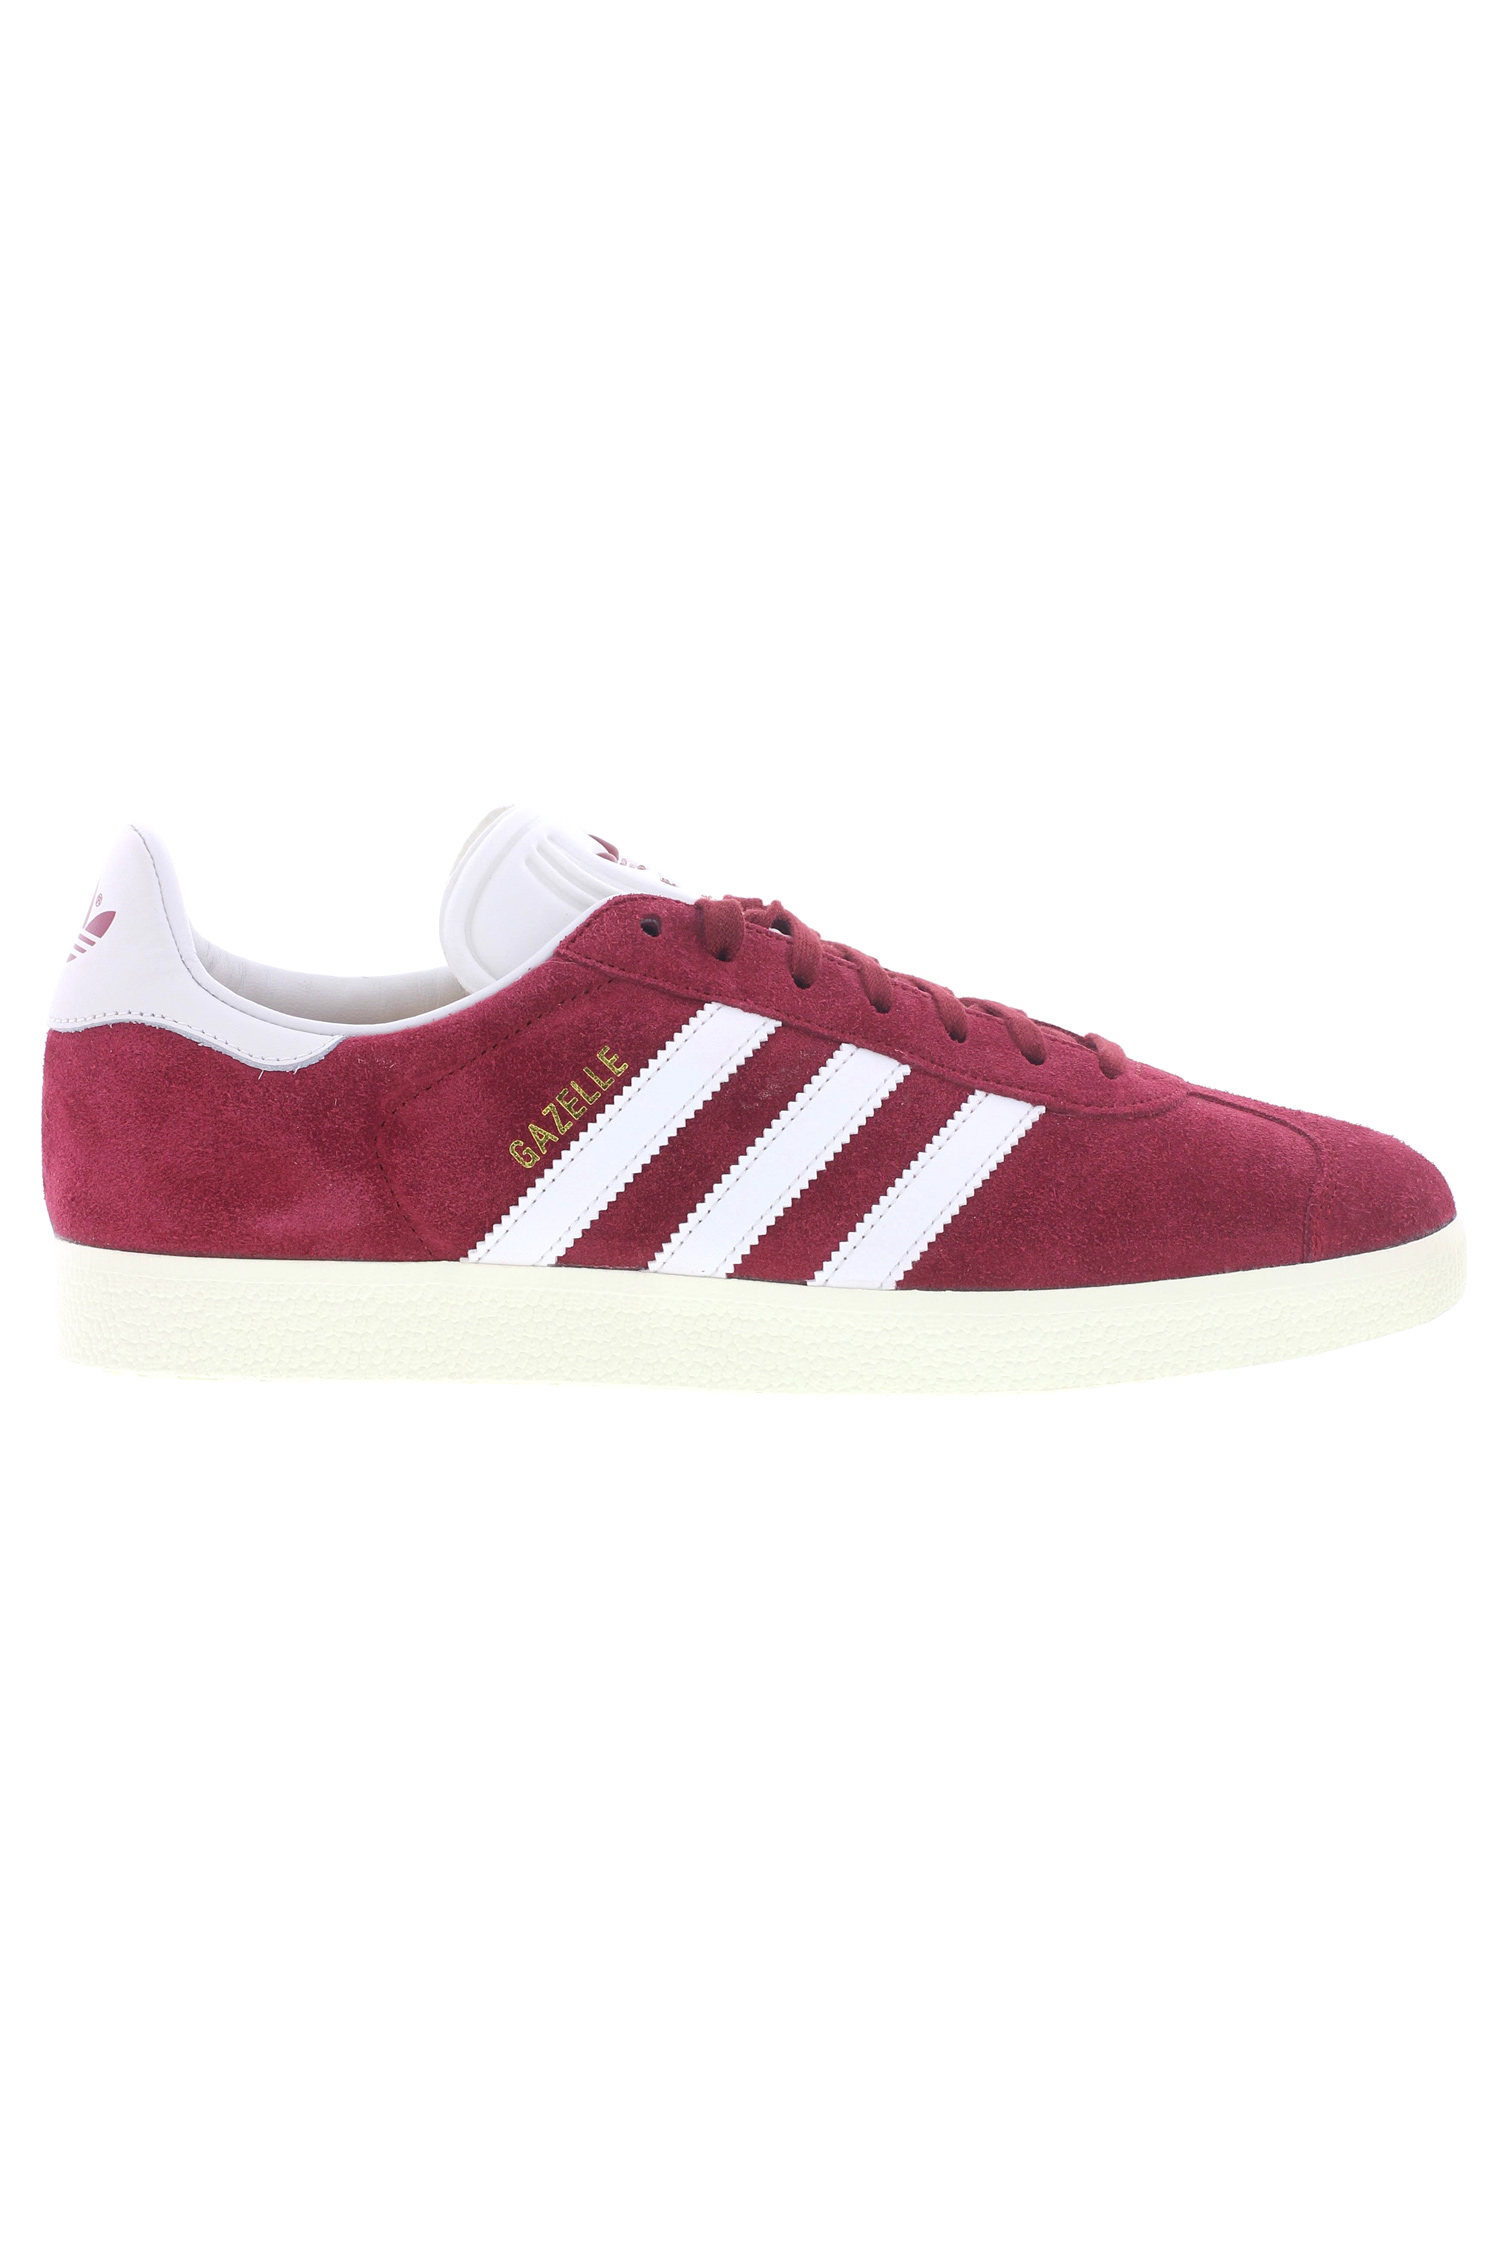 Adidas Originals / Gazelle Homme Bordeaux ...